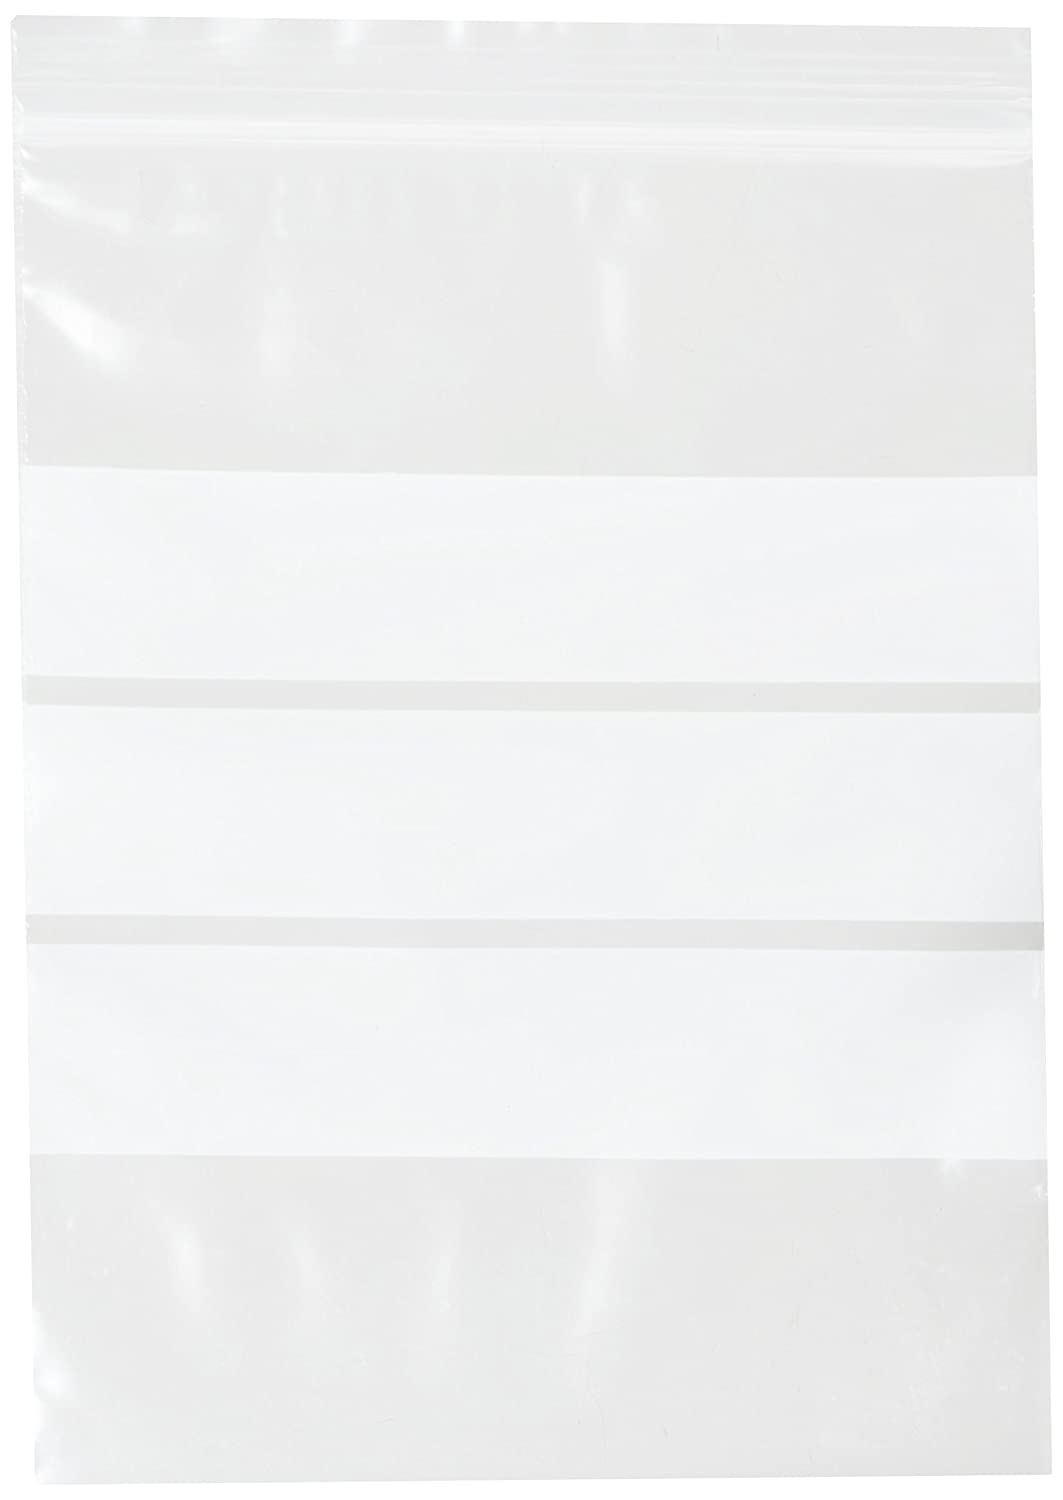 Edulab 153-526 Zip Lock Bags, ISG, 100 mm x 140 mm (Pack of 1000)